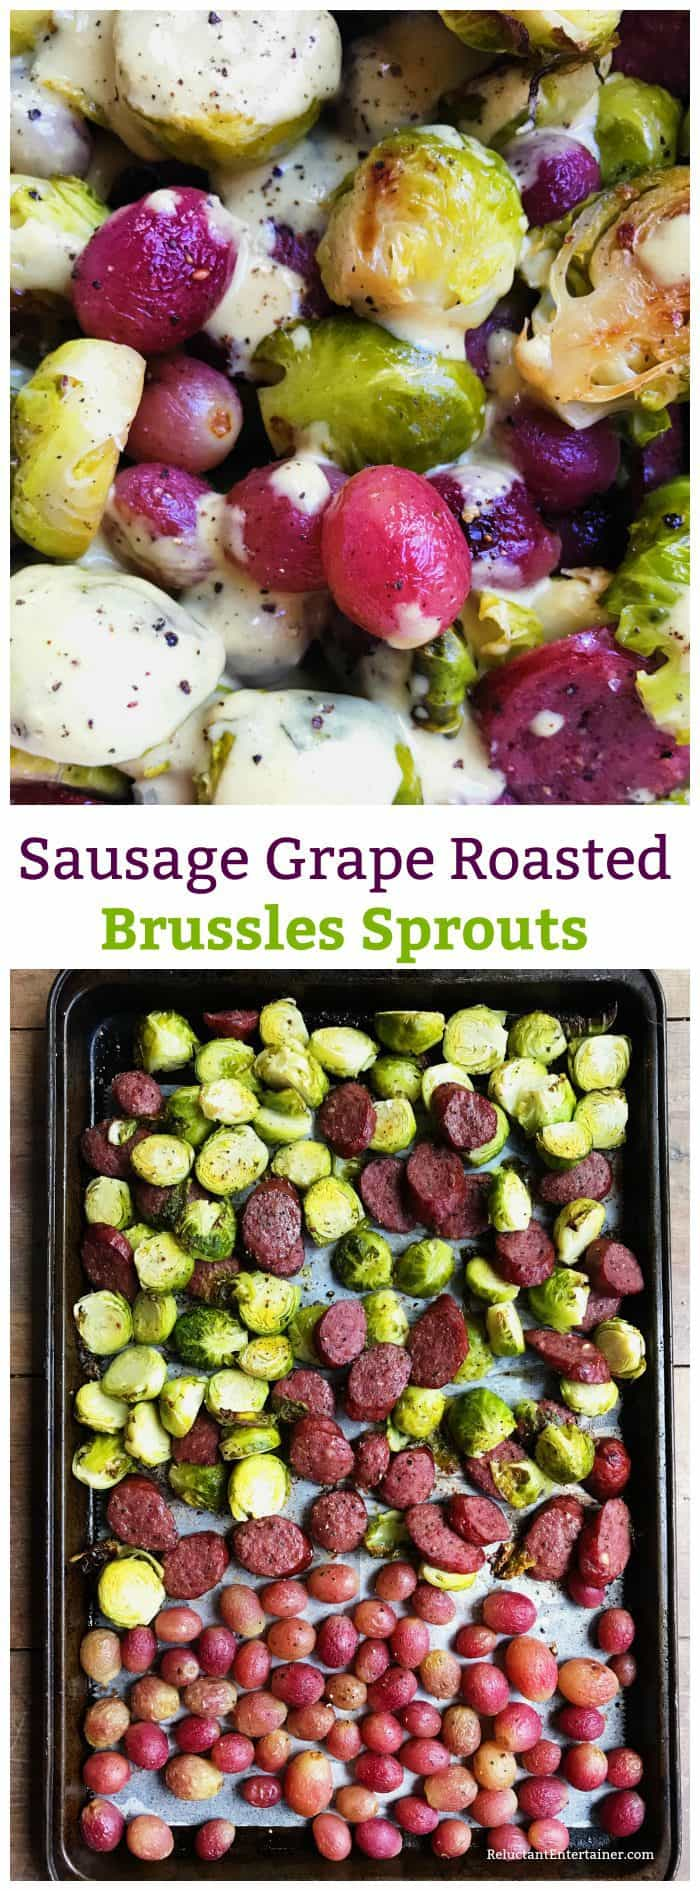 Sausage Grape Roasted Brussles Sprouts